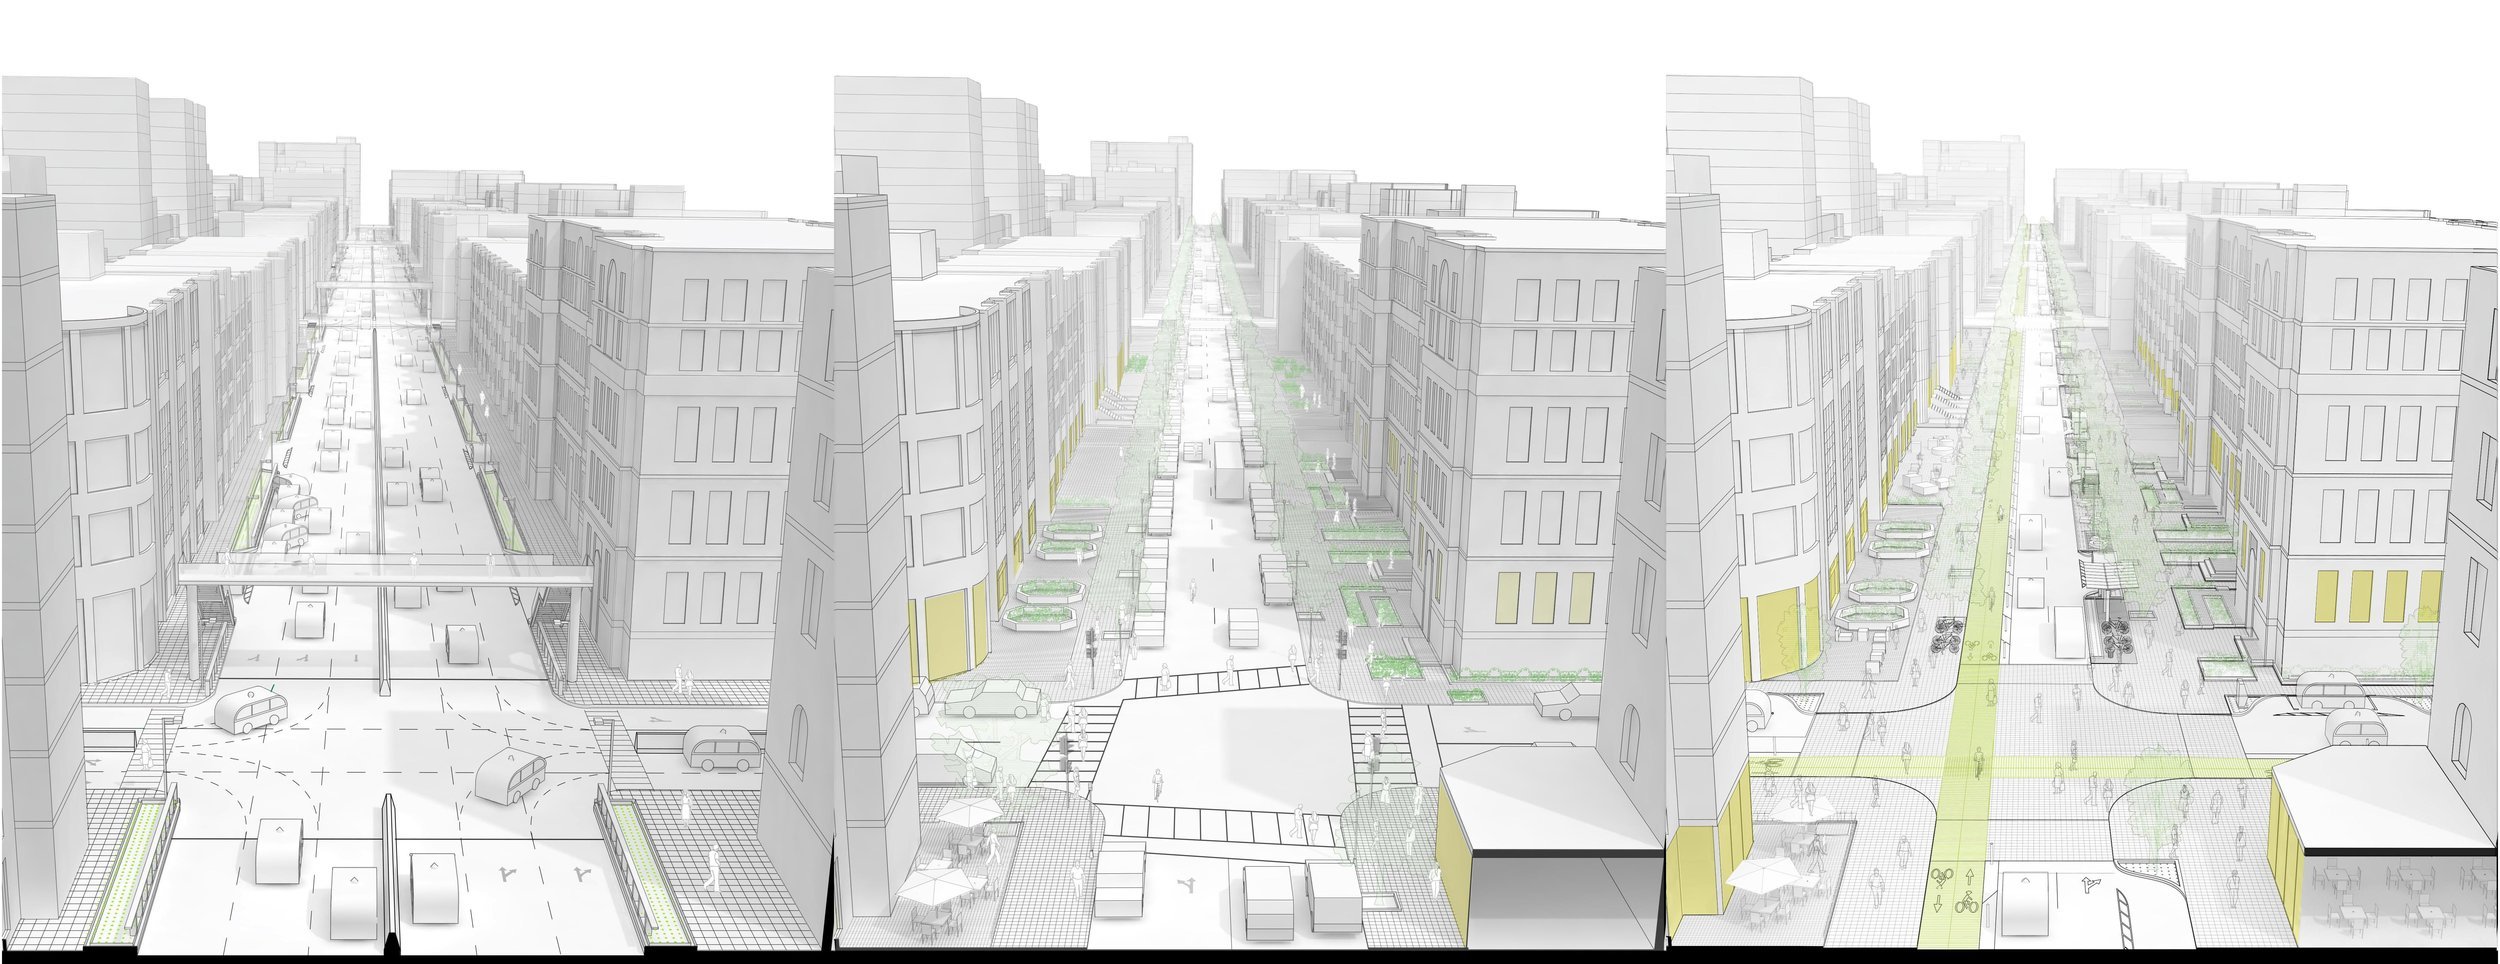 Future of Streets, Image Courtesy of City Form Lab